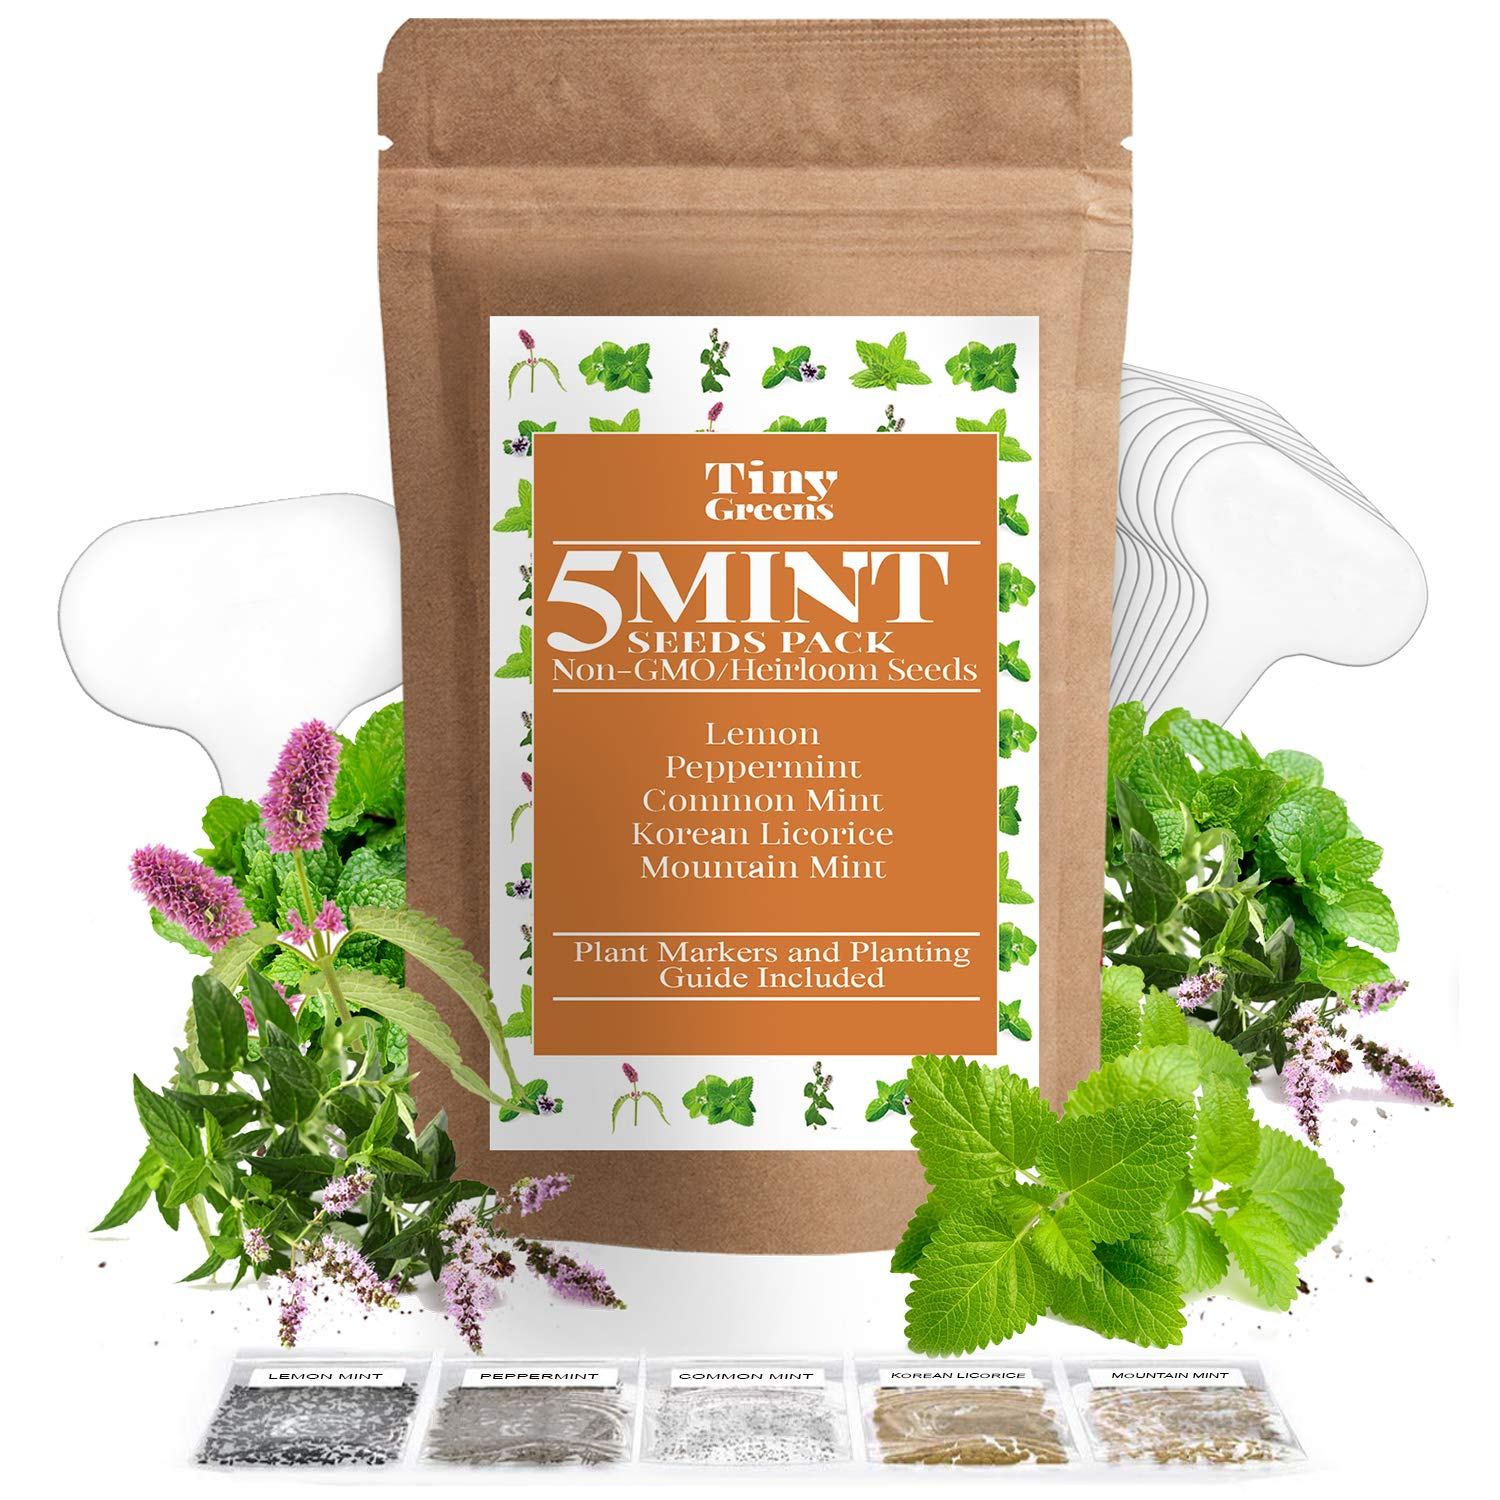 5 Mint Seeds Garden Pack - Peppermint, Lemon Mint, Mountain Mint, Korean Licorice, and Regular Mint - Perfect for Indoor or Outdoor Herb Gardens - Make Your Own Herbal Mint Tea | Heirloom & Non-GMO